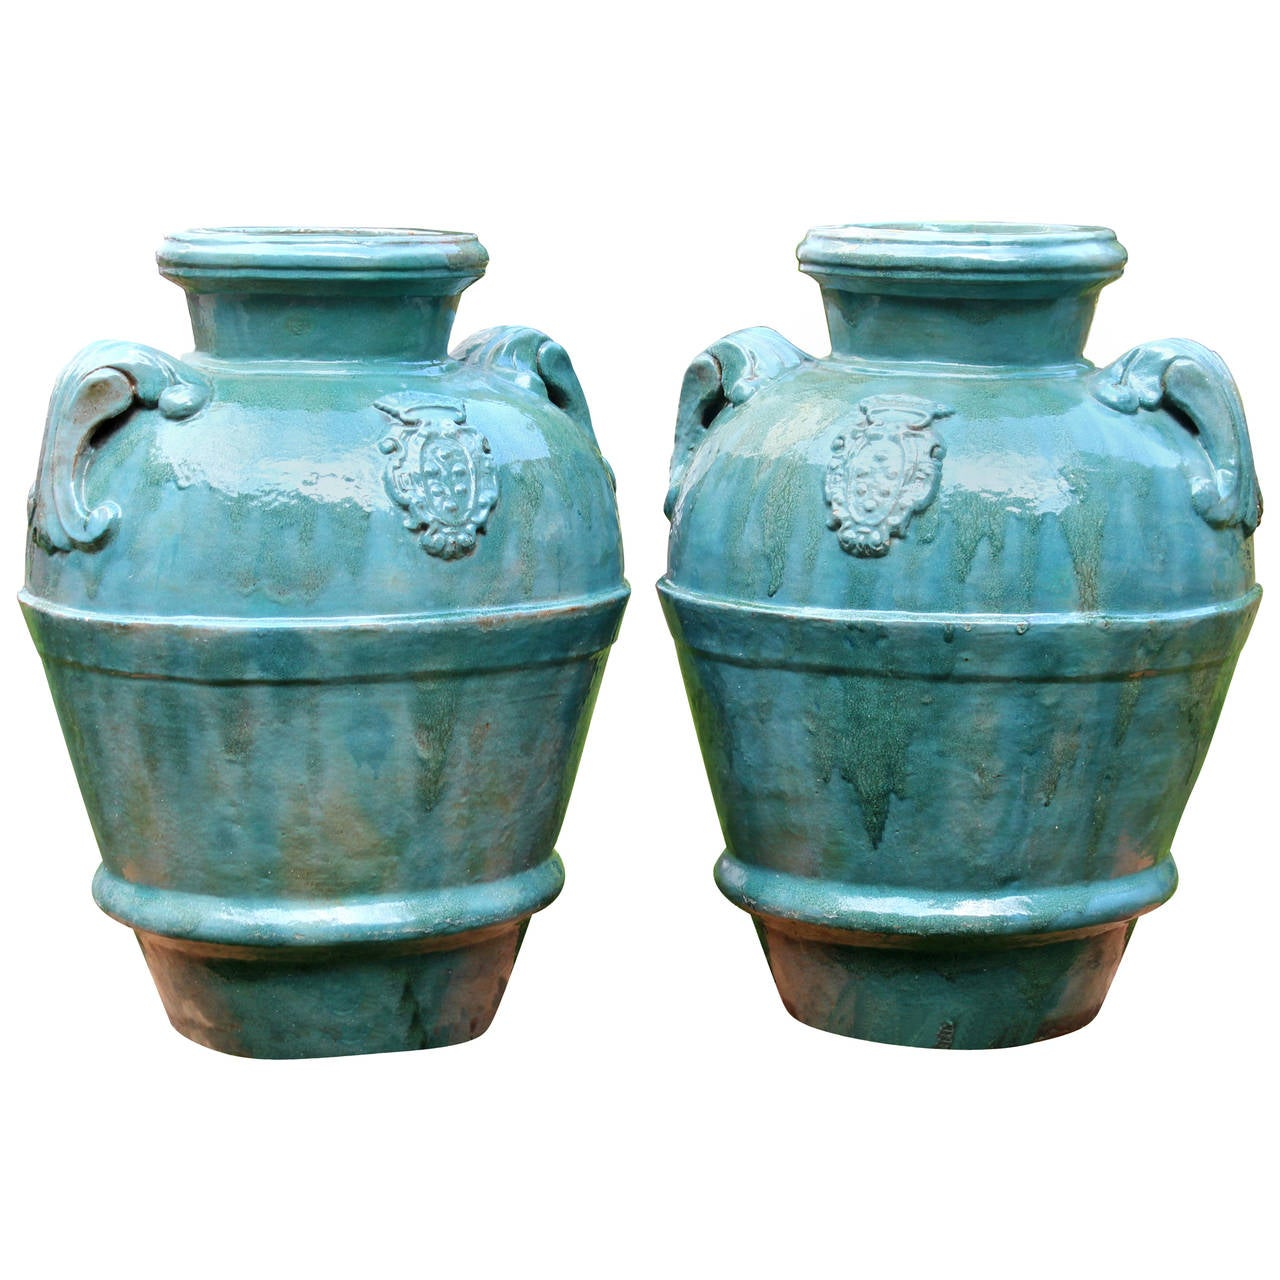 Huge pair large antique galloway terracotta pottery garden urns huge pair large antique galloway terracotta pottery garden urns porch vases for sale reviewsmspy